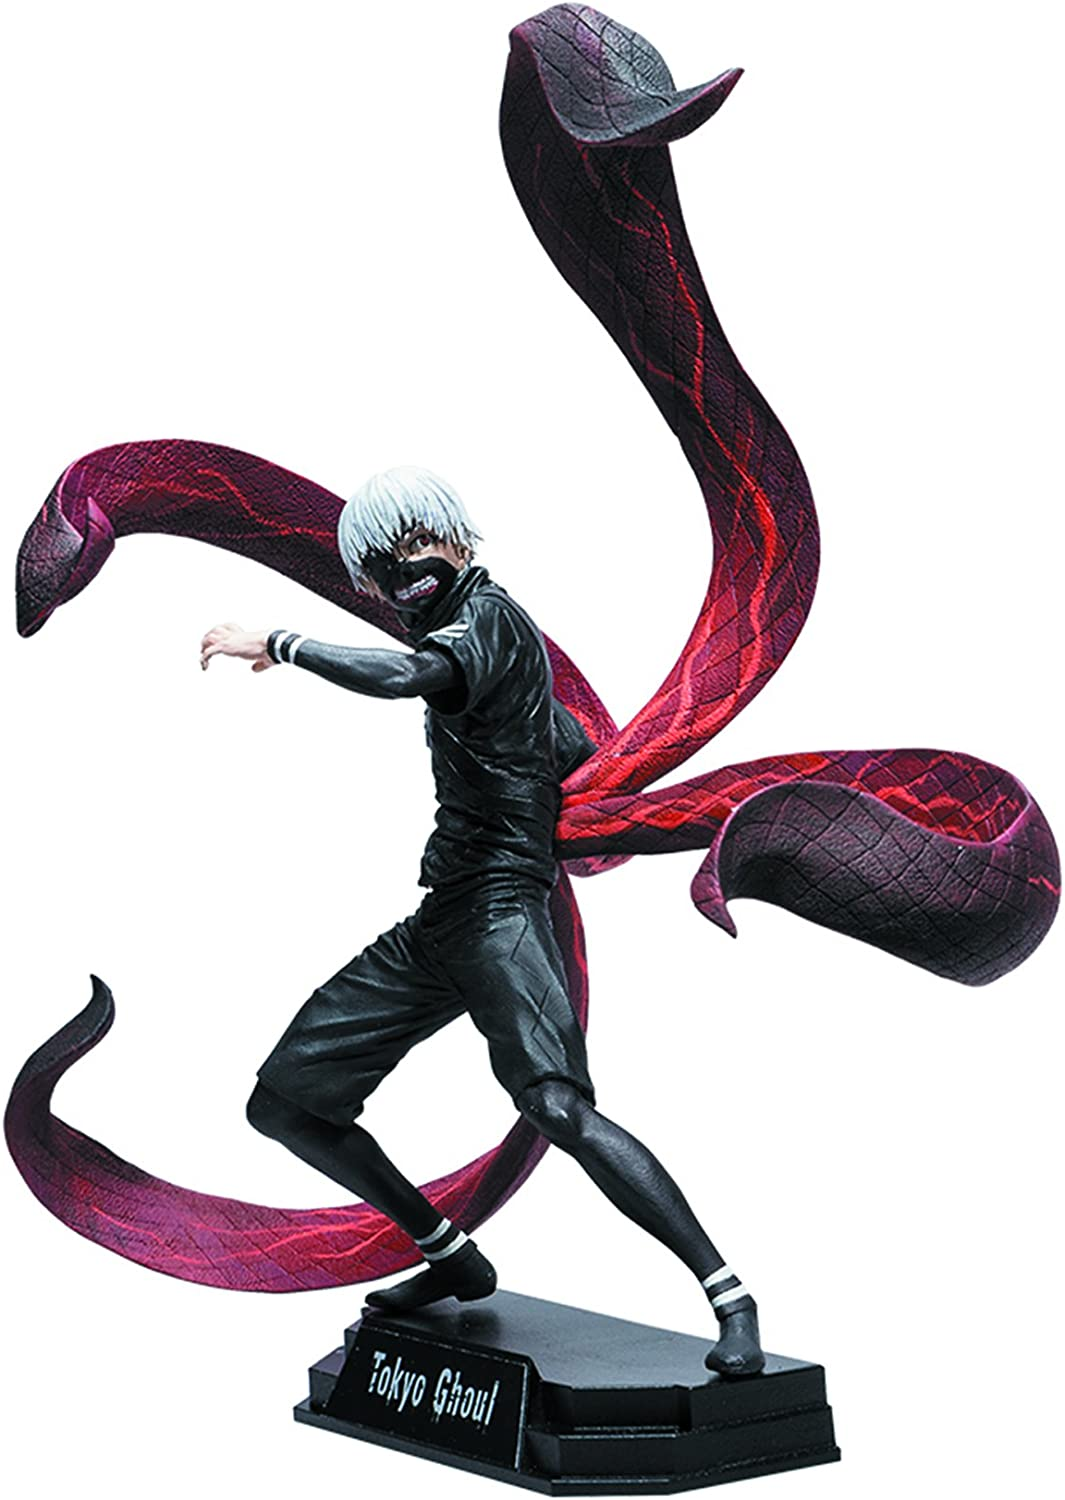 Amazon Com Mcfarlane Toys Tokyo Ghoul Ken Kaneki 7 Collectible Action Figure Toys Games